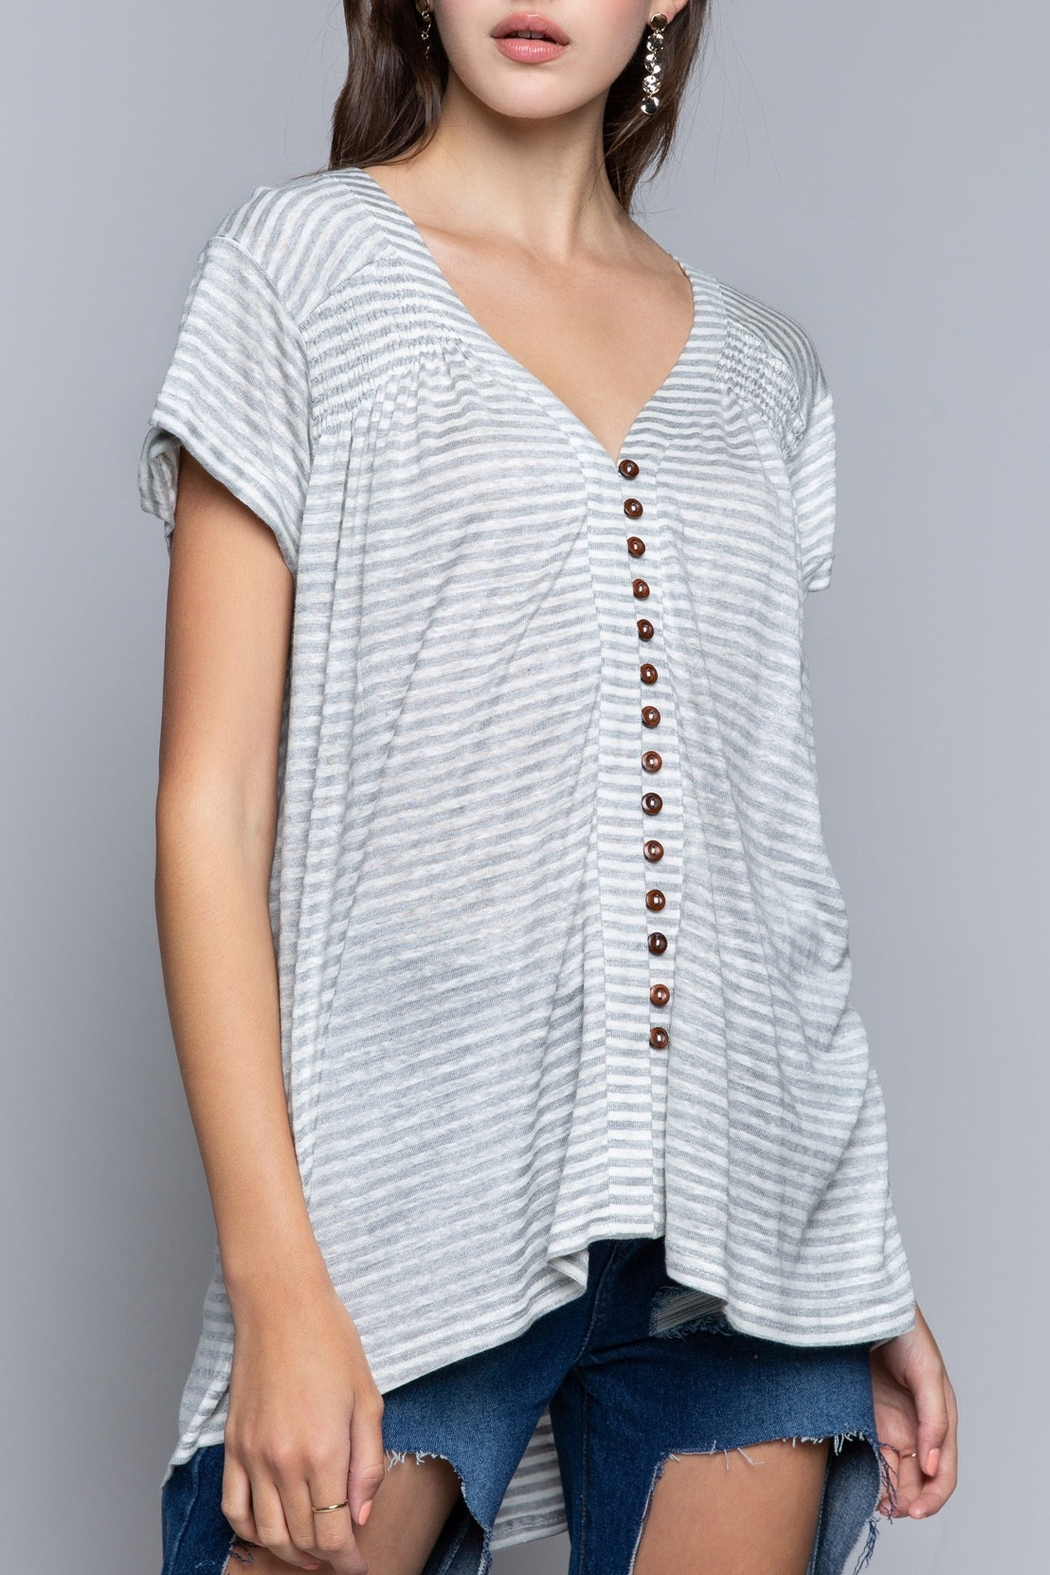 Pol Clothing Striped Button Shirt - Back Cropped Image